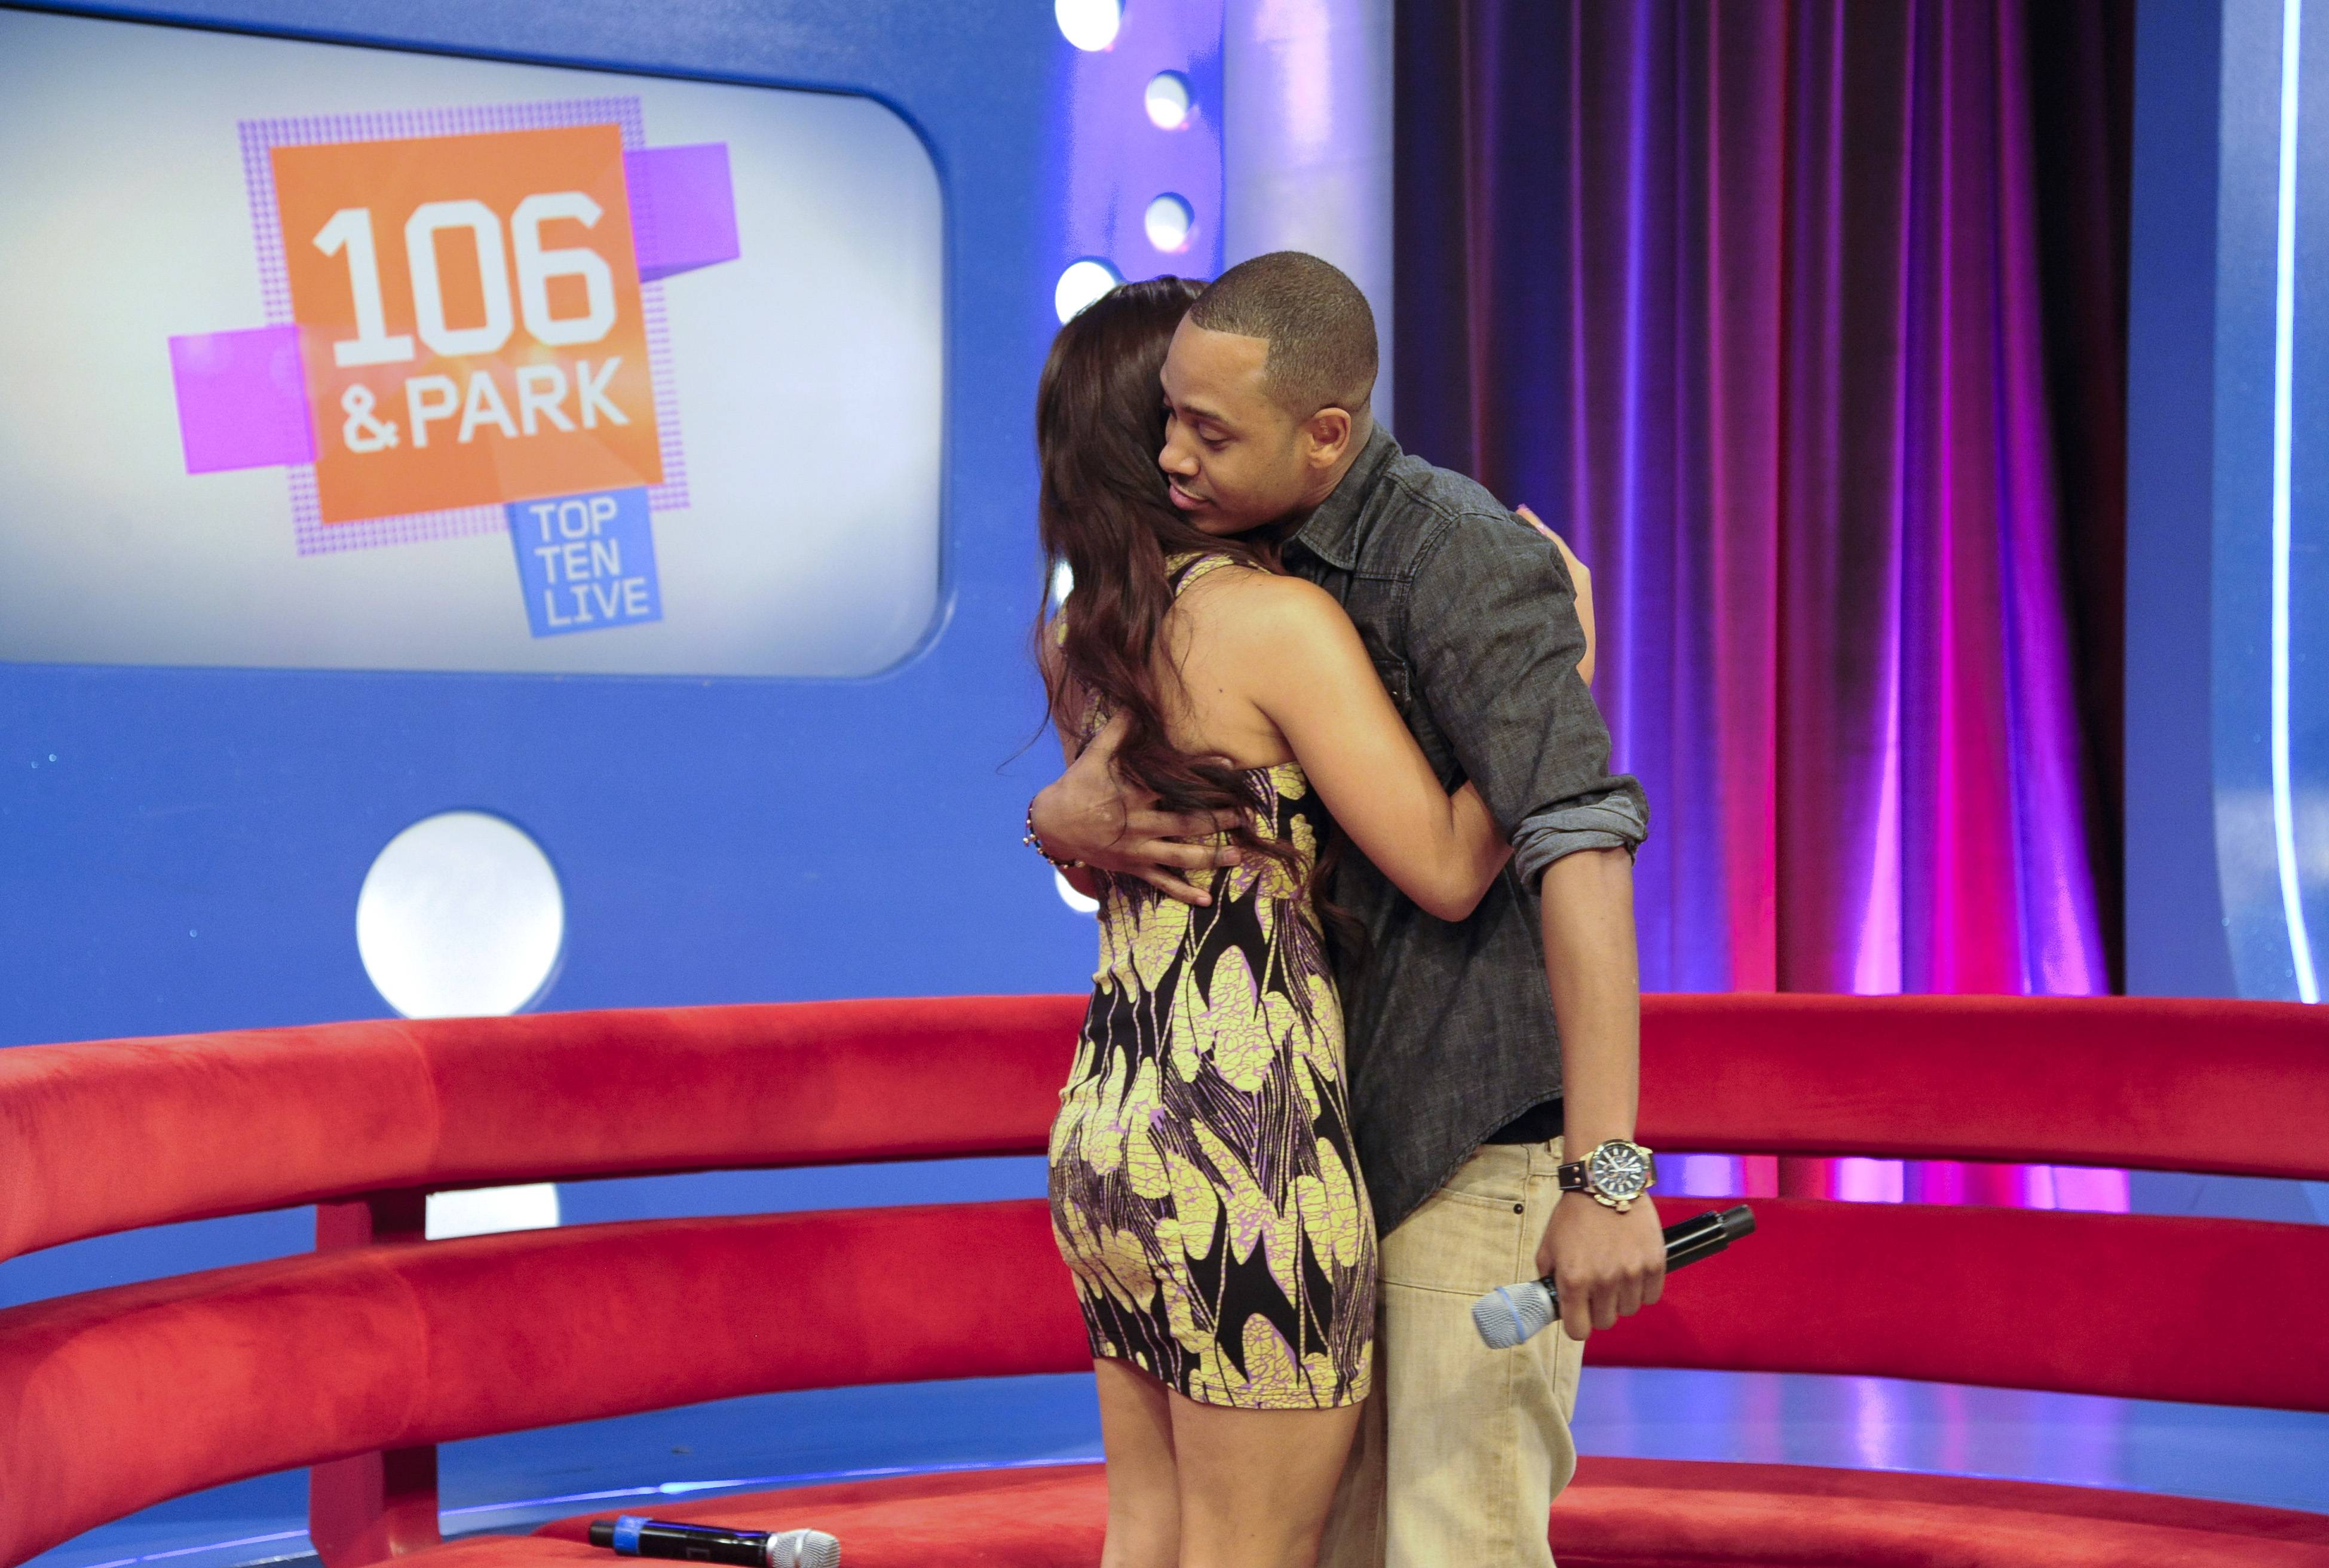 One Love - Terrence J and Rocsi Diaz announce they will be leaving the show in the near future at 106 & Park, May 29, 2012. (Photo: John Ricard / BET)